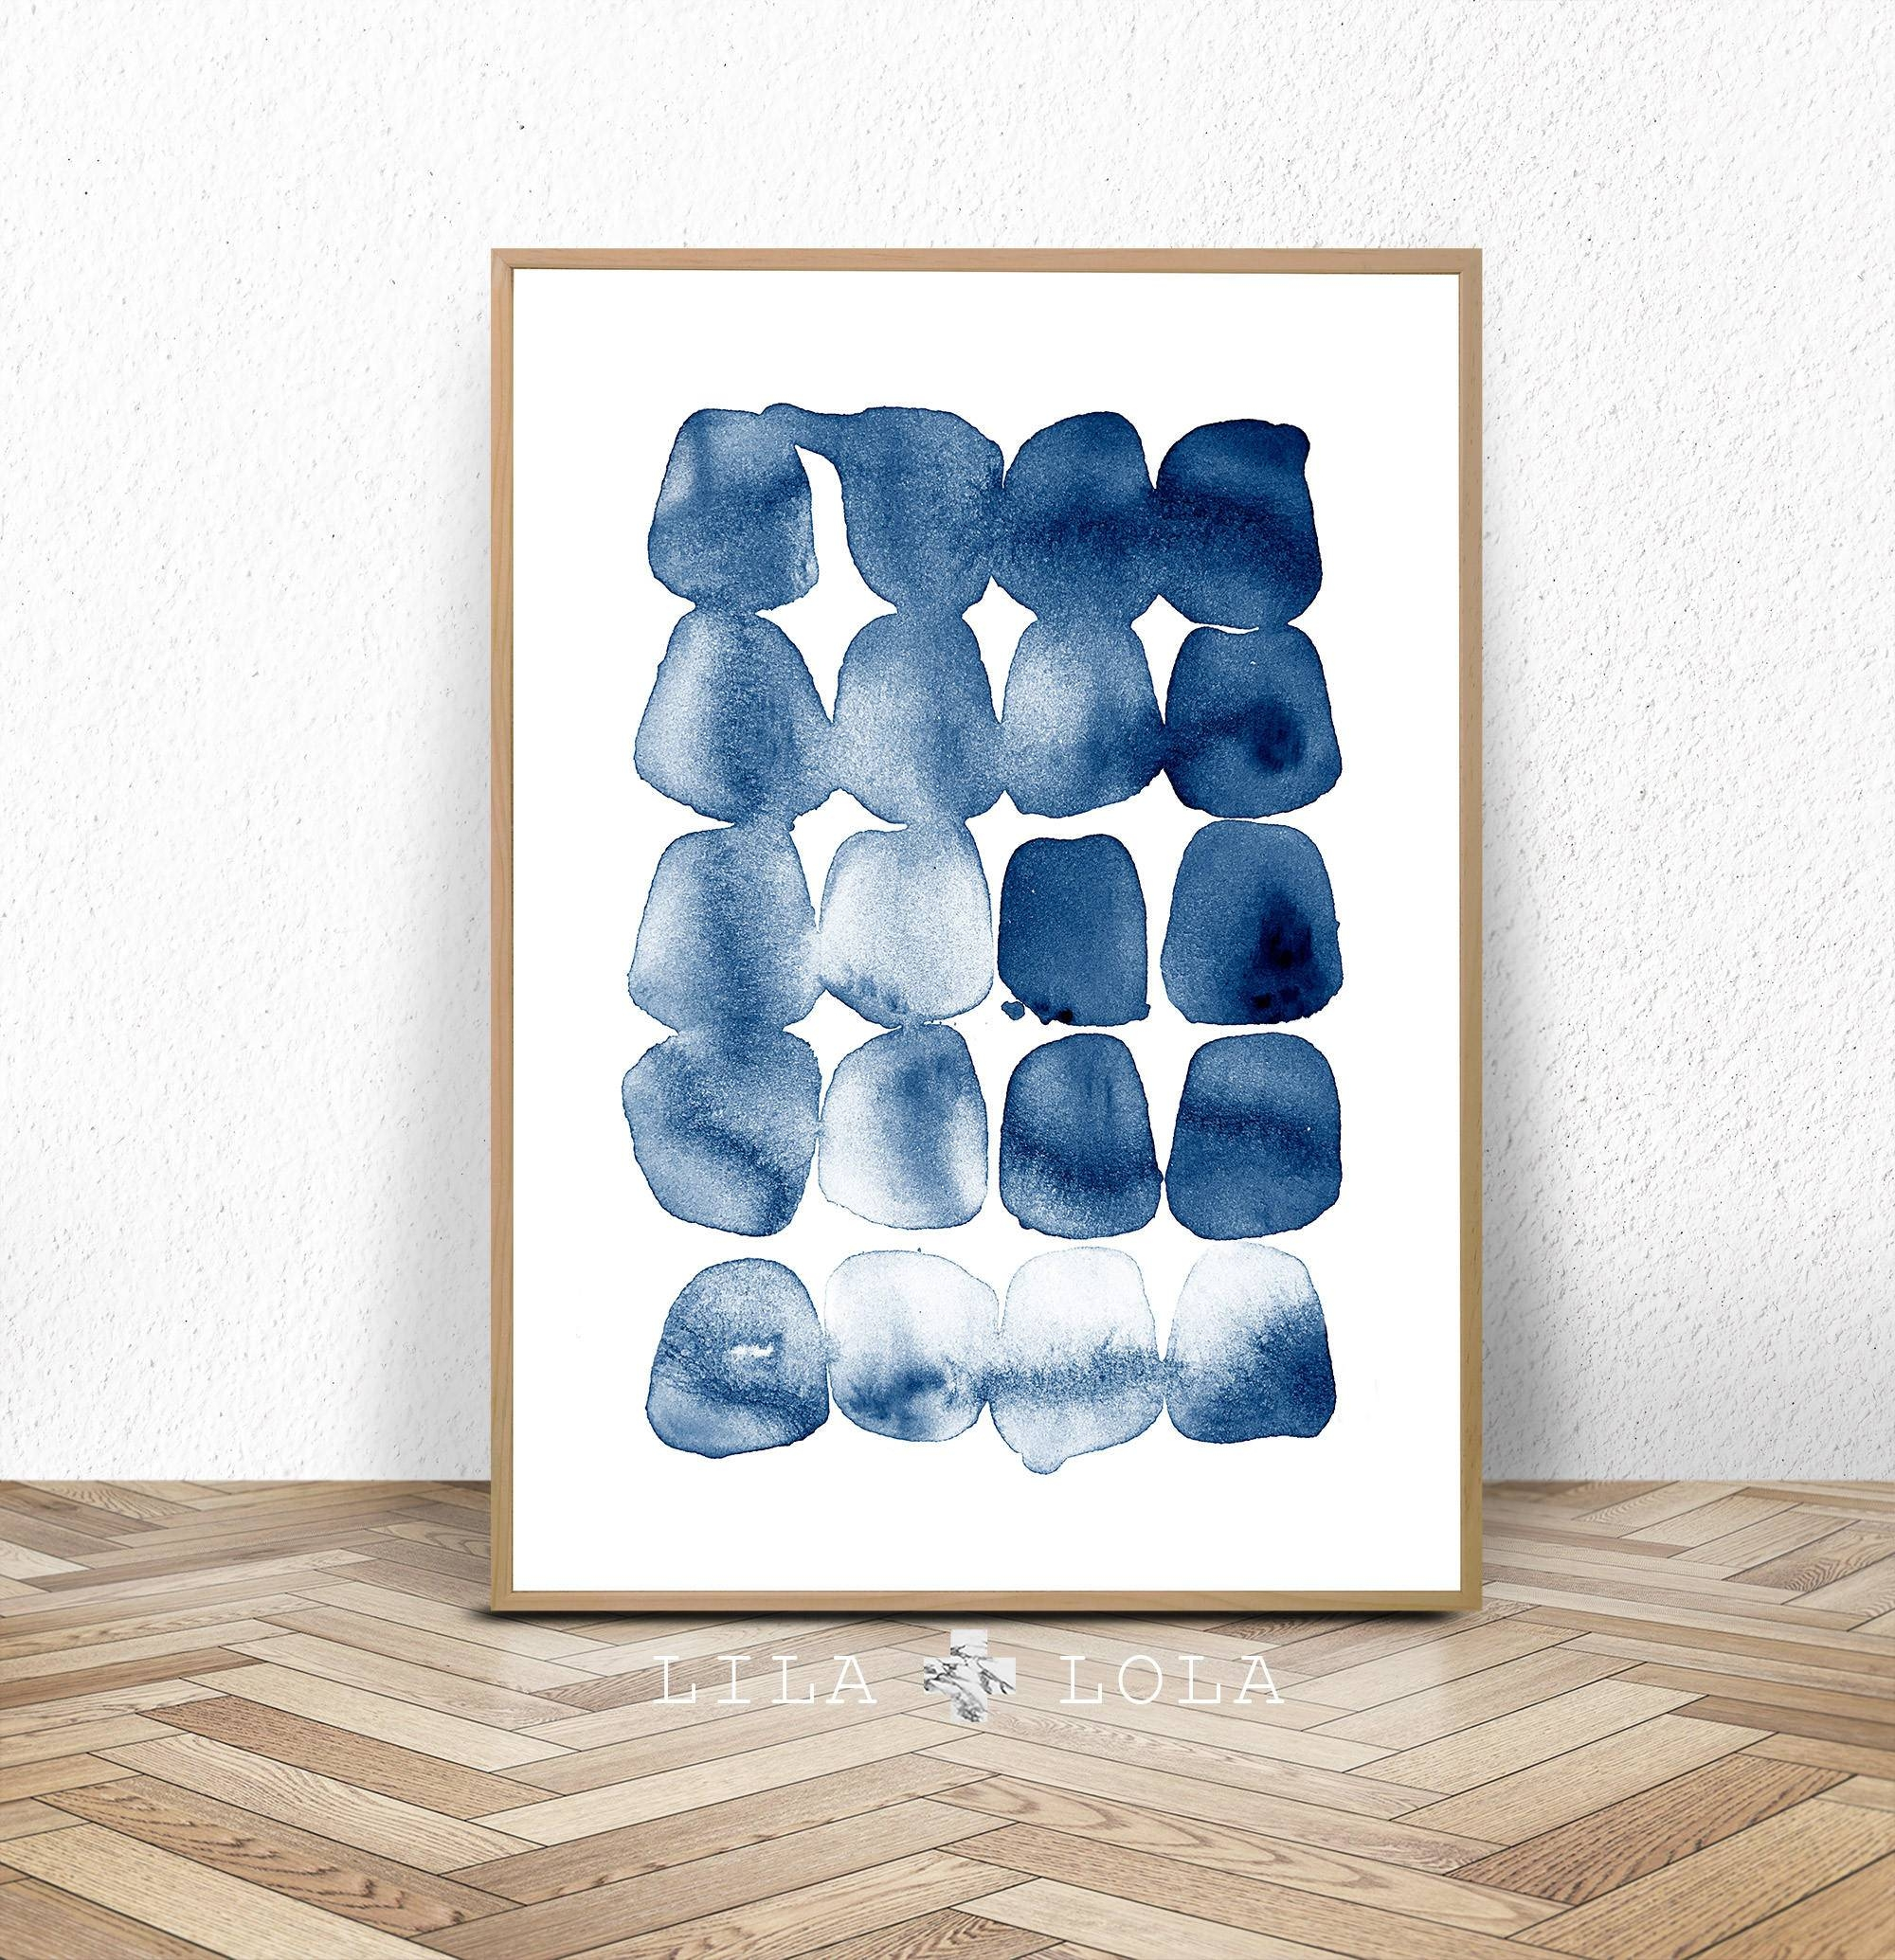 Home Gallery – Etsy Within Most Recently Released Dark Blue Wall Art (View 10 of 20)